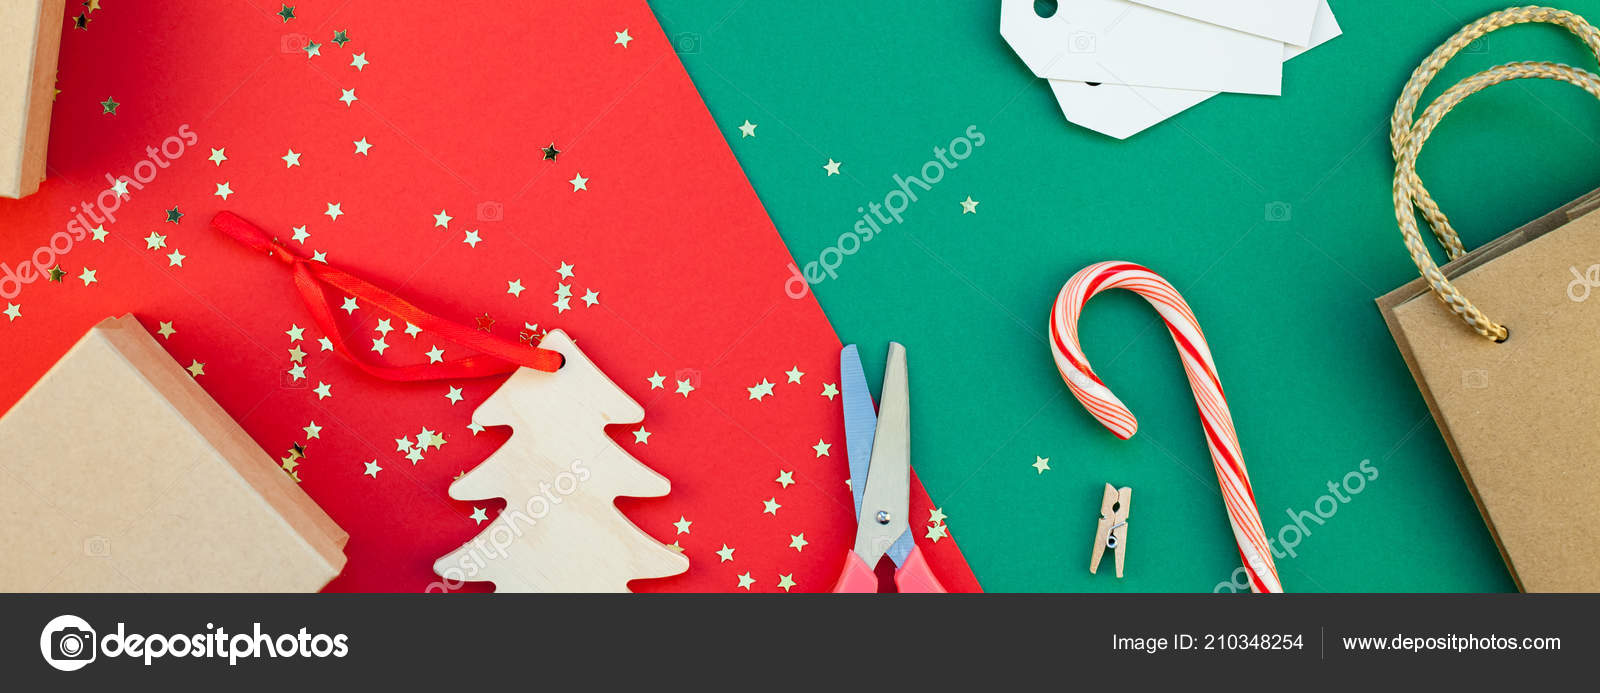 new year or christmas presents preparation diy flat lay top view xmas holiday celebration handmade gift boxes on red green paper background